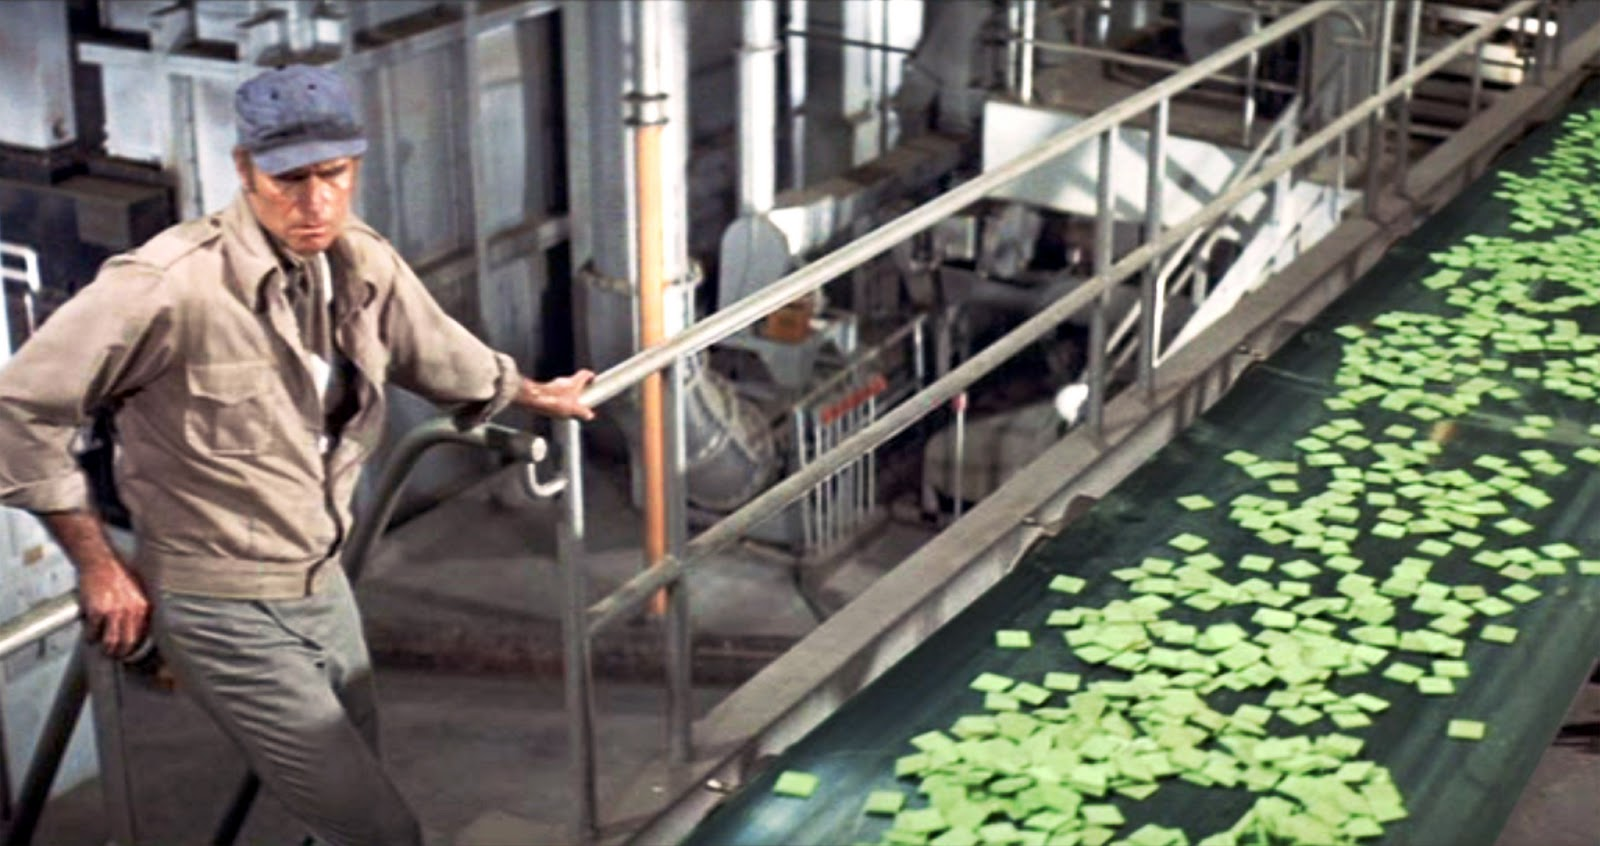 Soylent green turning human remains into compost for Soylent green